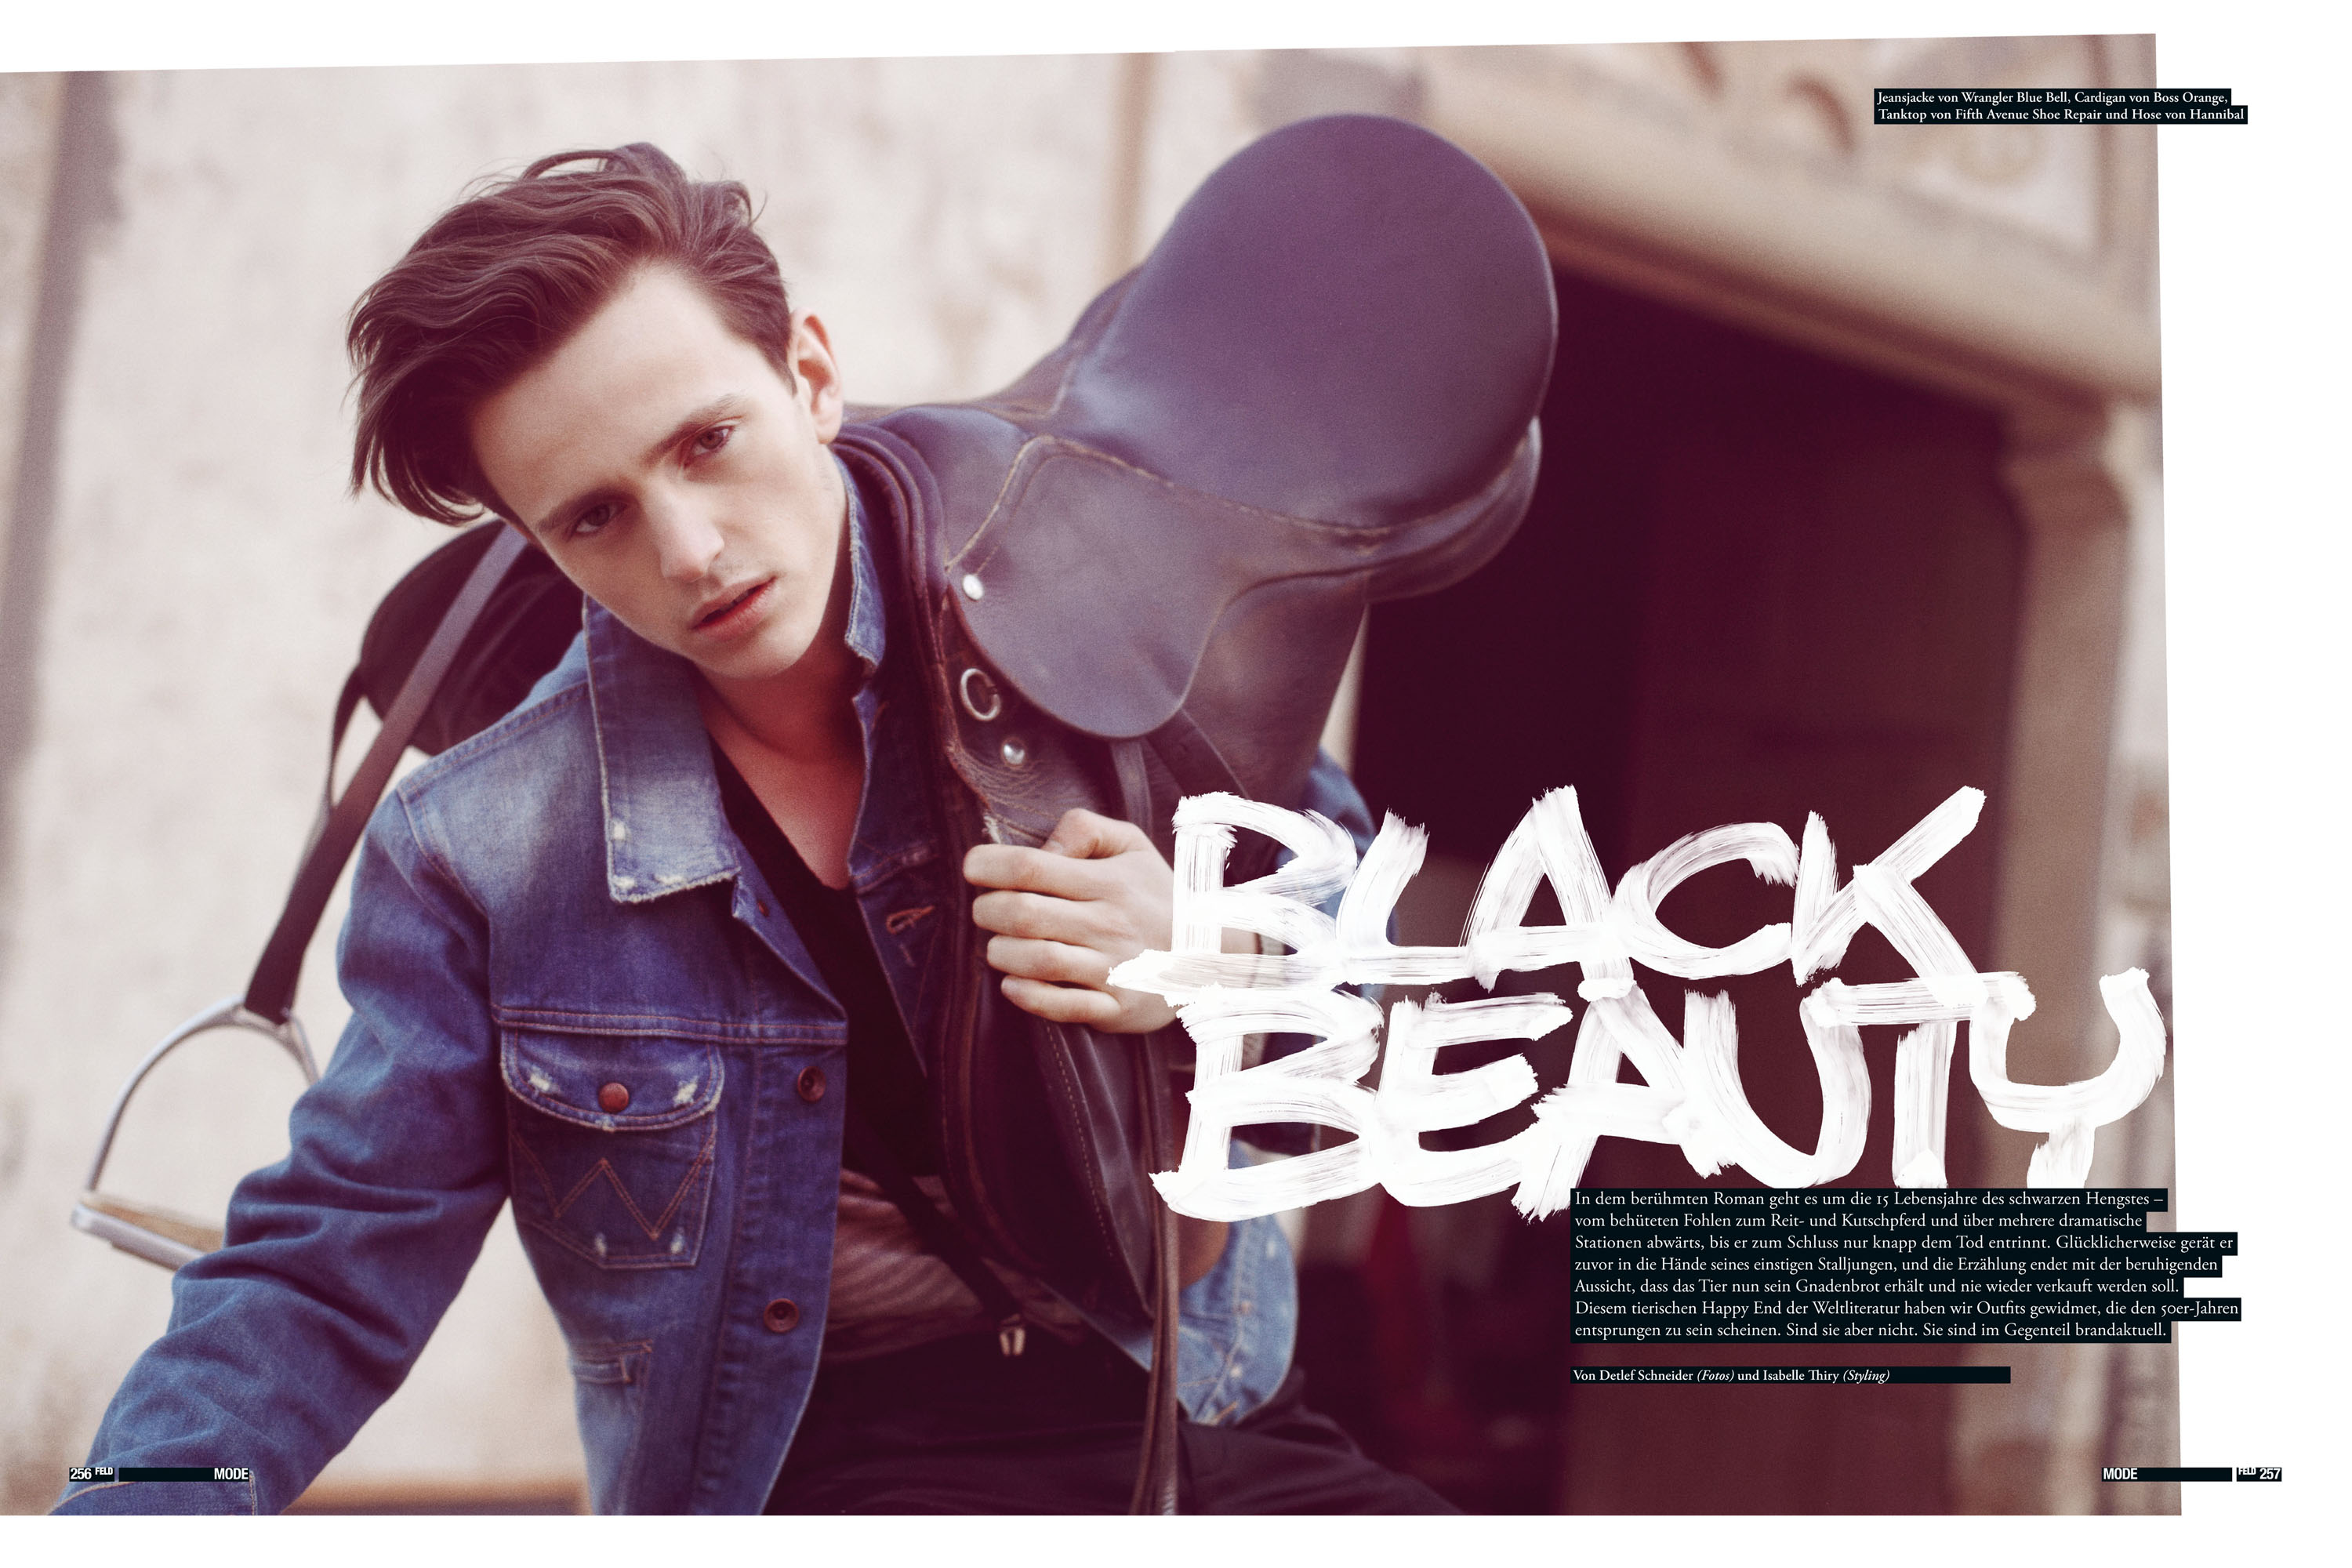 Feld Homme magazine, Model Alex Dunstan, Detlef Schneider Photography